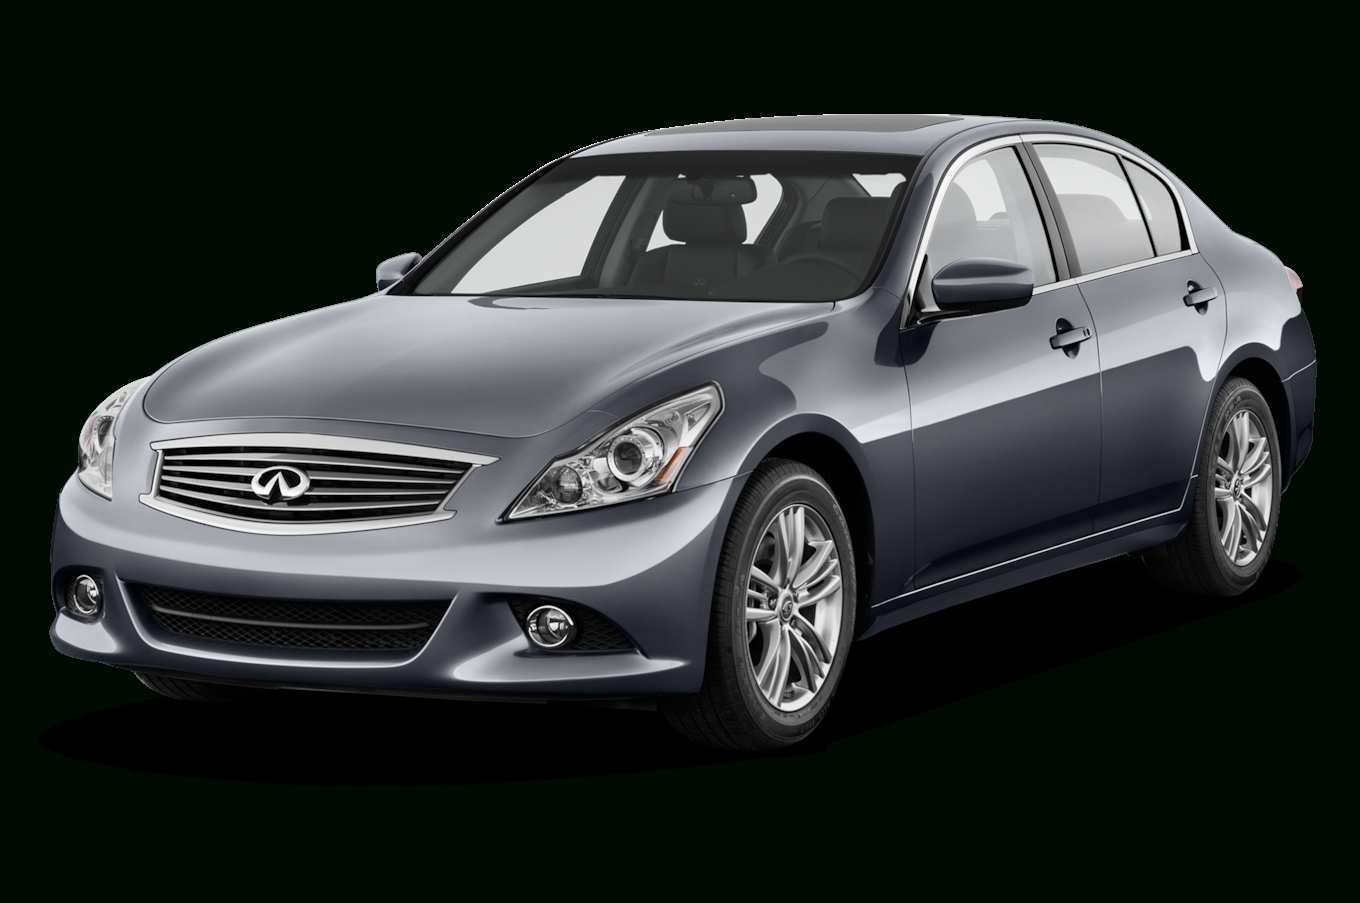 27 Best 2019 Infiniti G37 Spesification